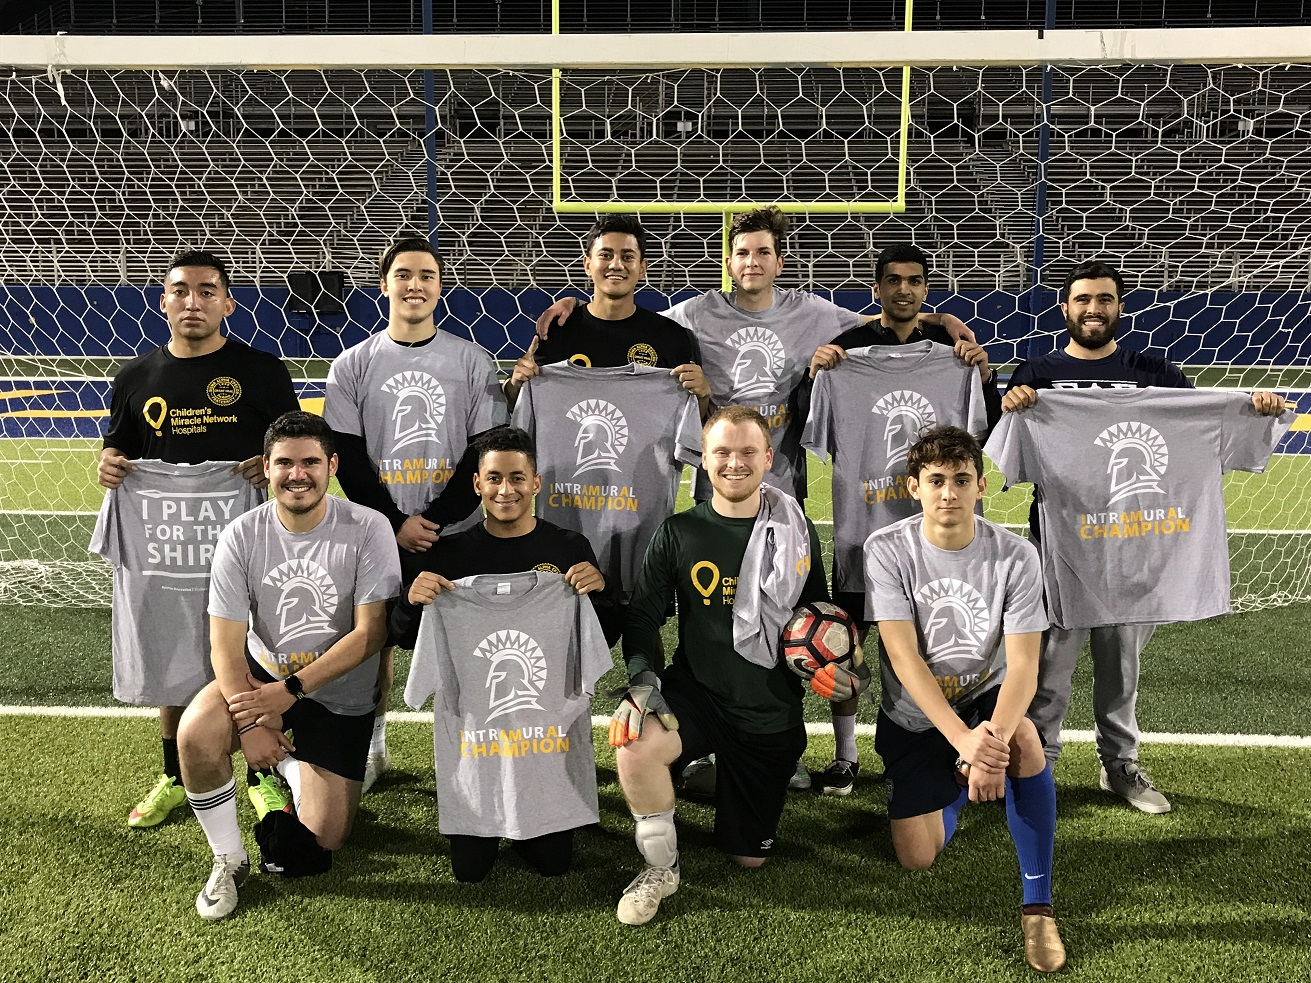 ifc soccer champs